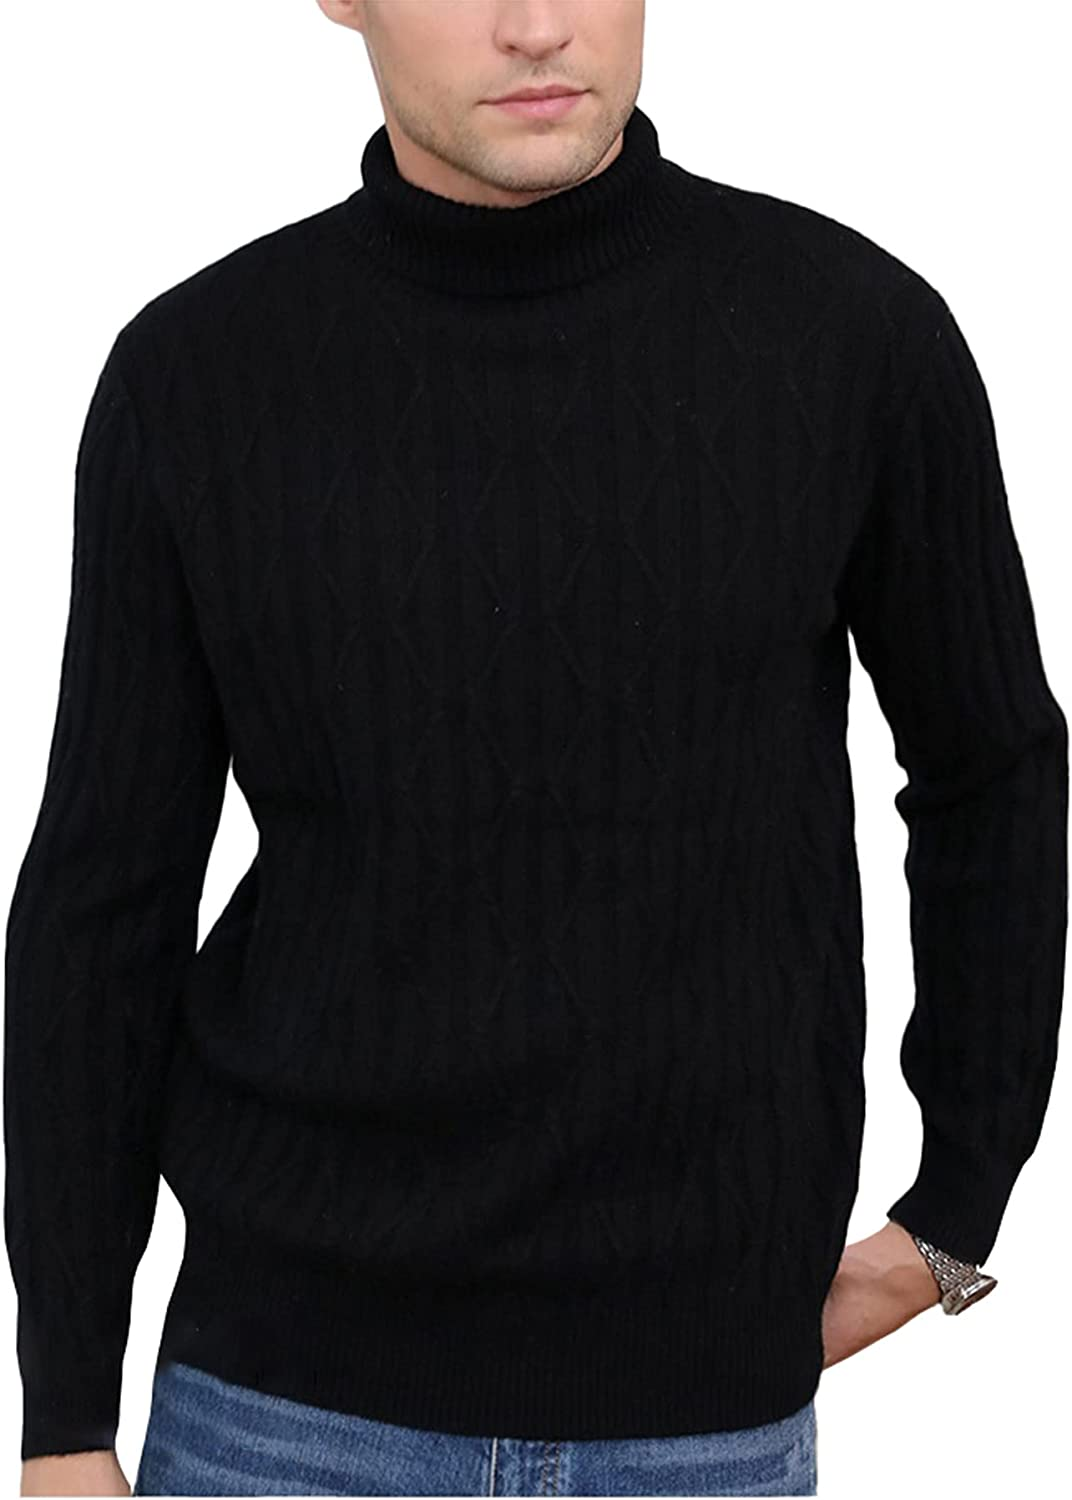 Men's Turtleneck Cashmere Sweater Thicken Mid-Length Casual Pullover Plus Size Outwear Keep Warm Tops Daily